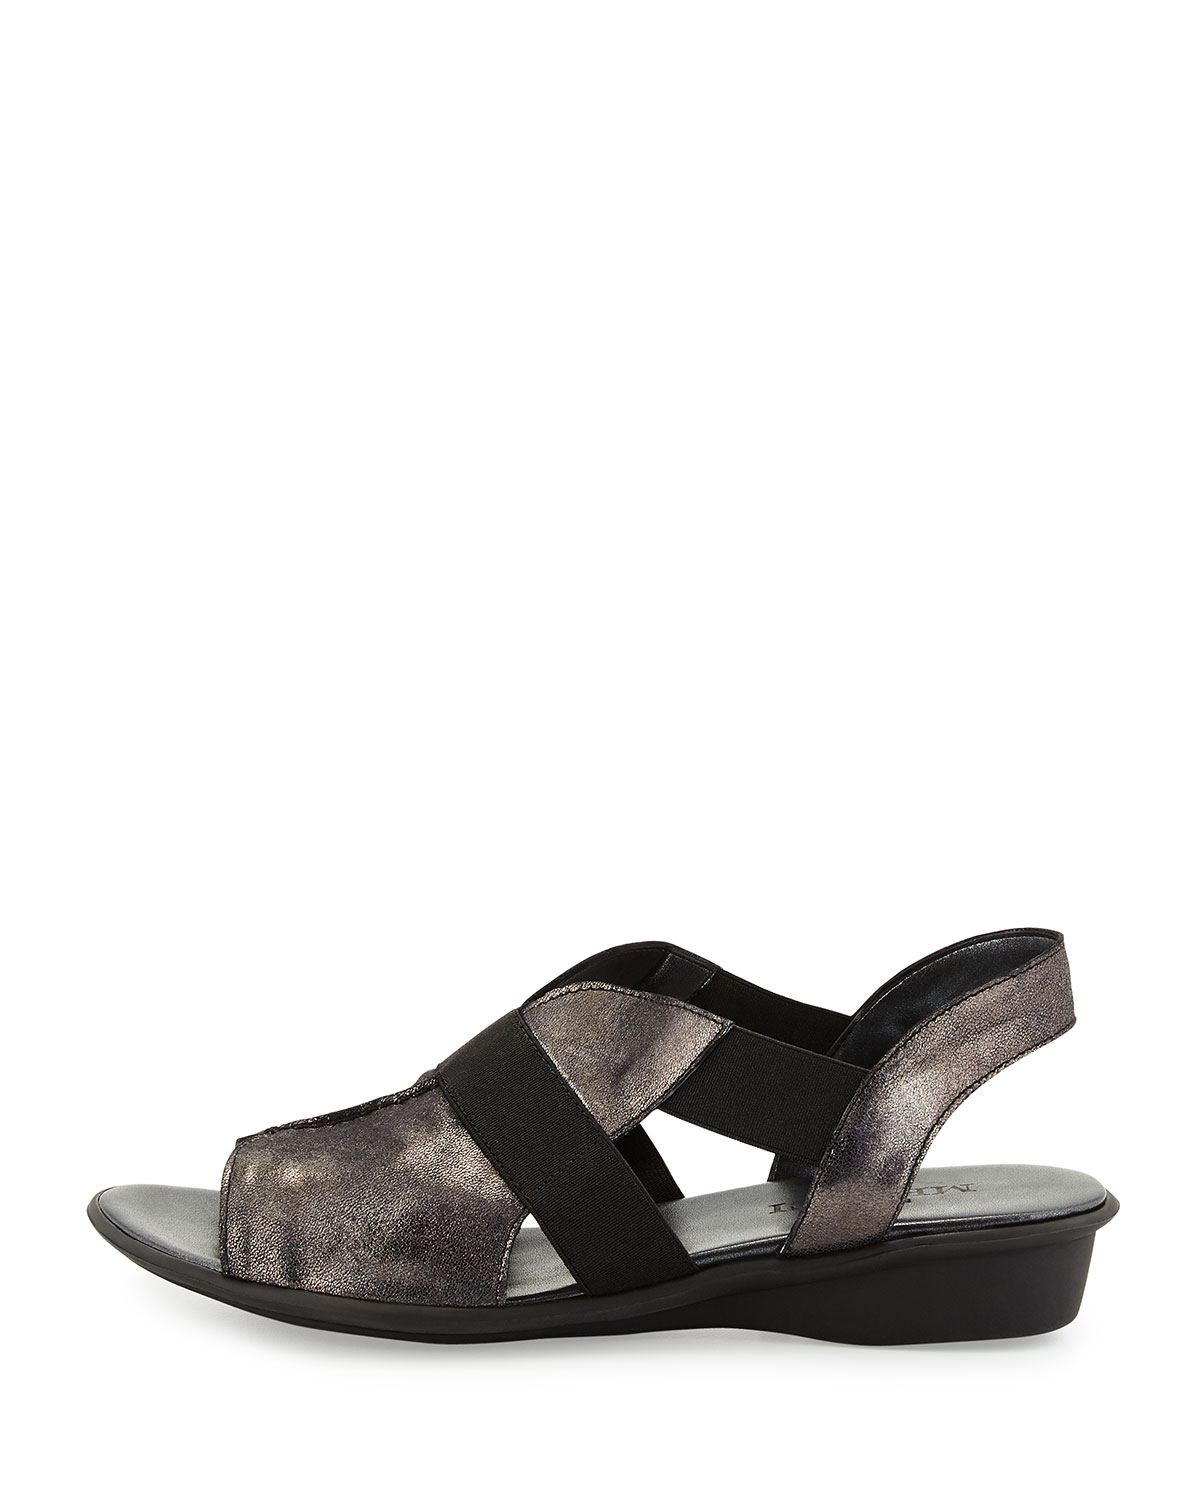 Sesto Meucci Estelle Metallic Sandals In Multicolor Lyst